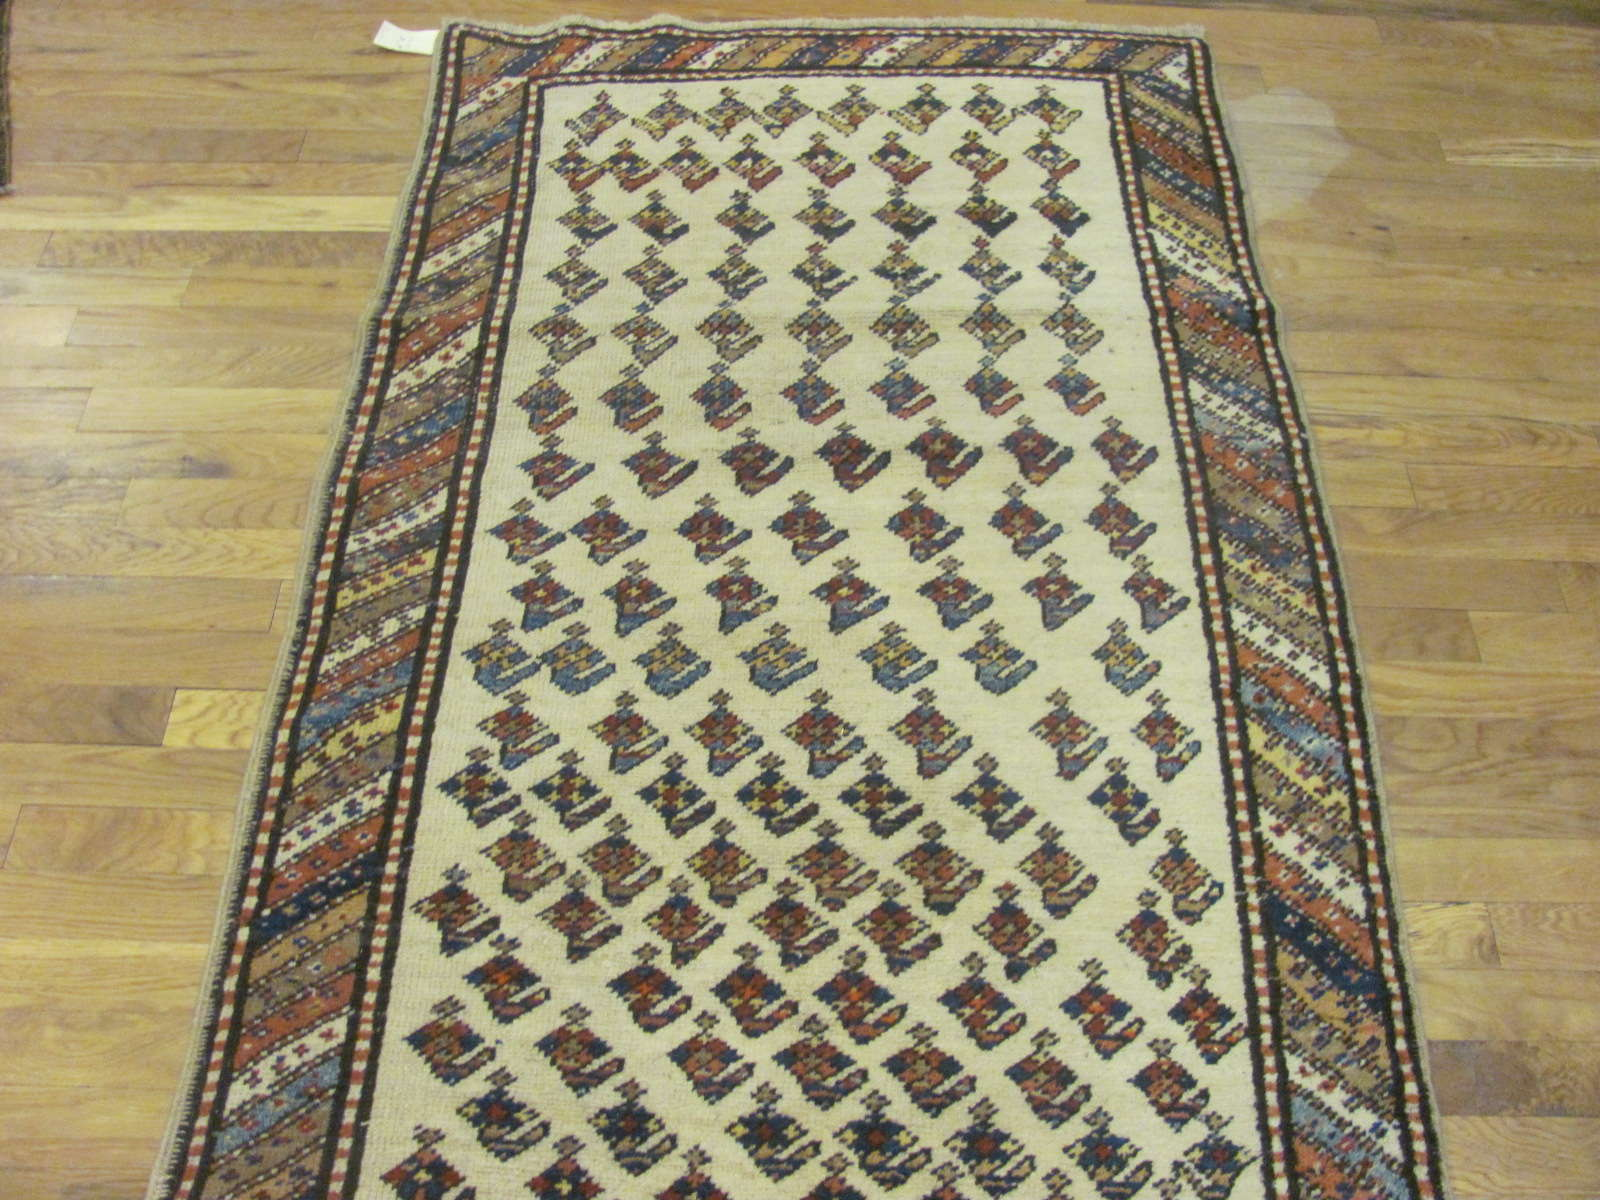 24820 antique caucasian karabagh runner 3,2x10,3-1